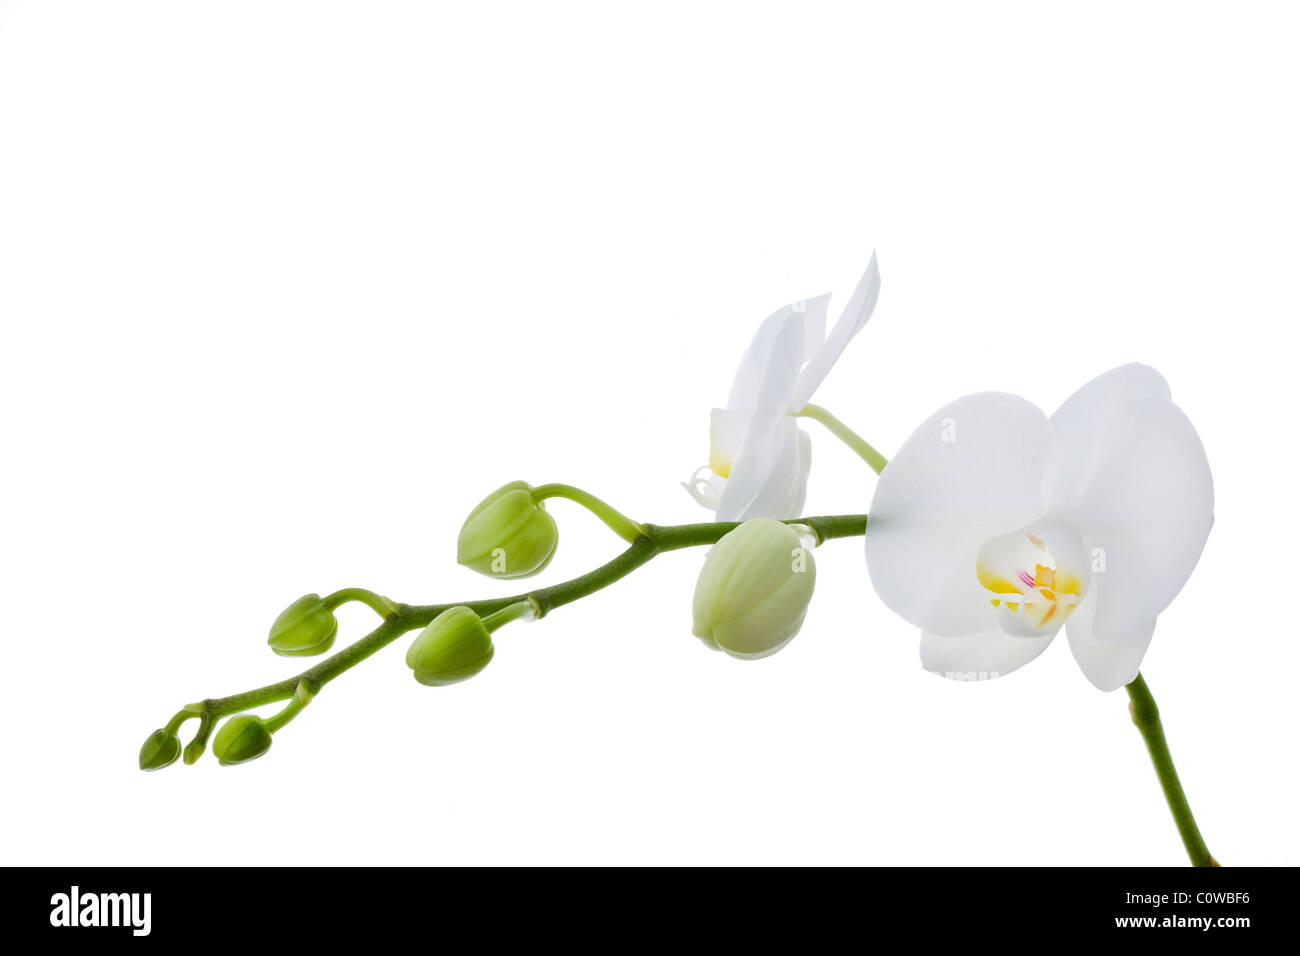 white phalaenopsis orchids against white background - Stock Image